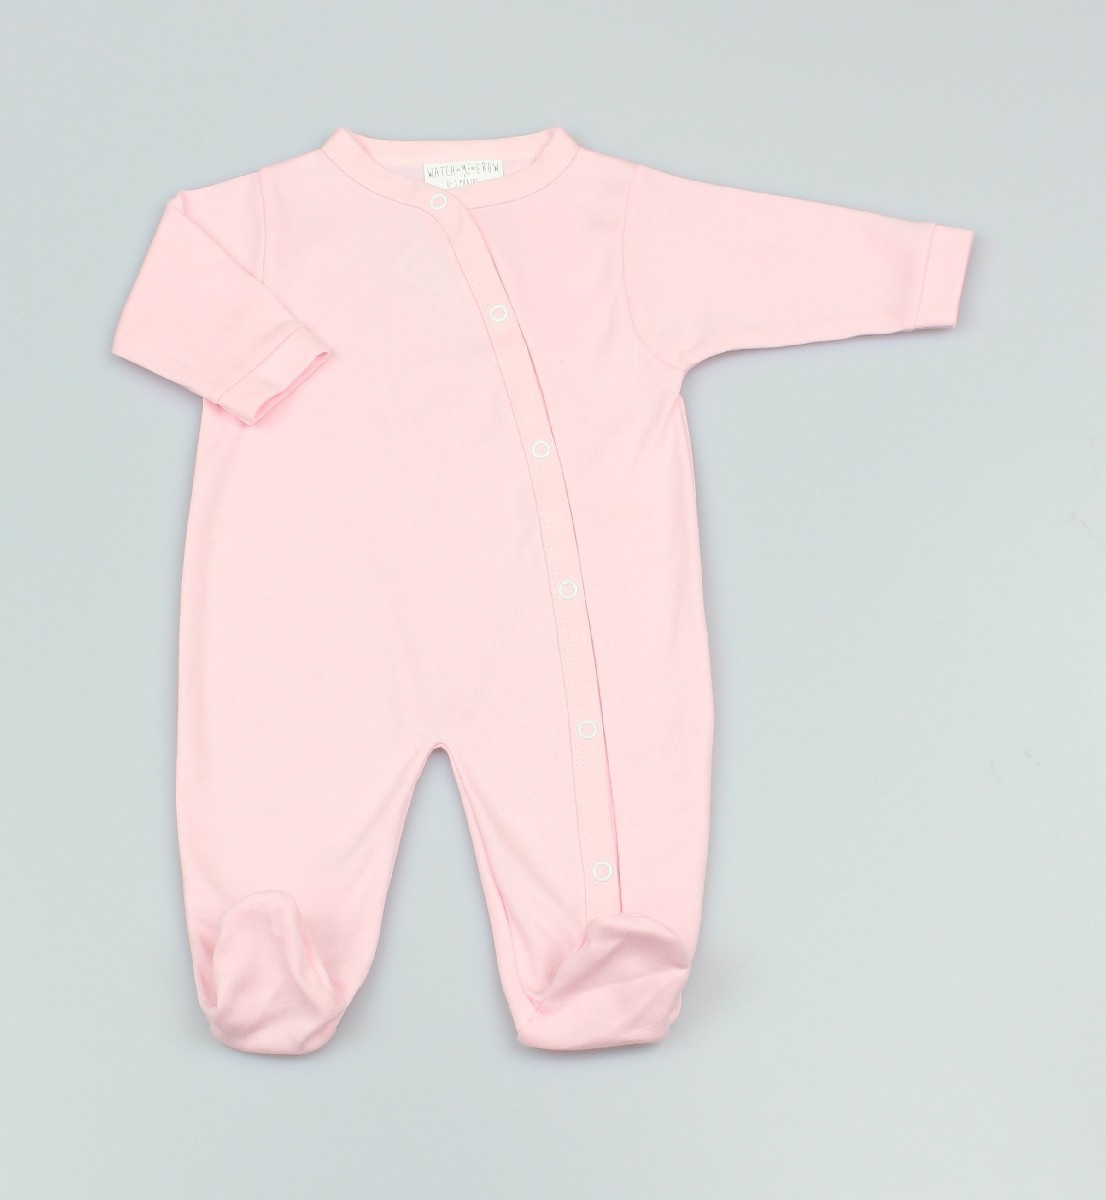 Baby Cotton Sleepsuit - Pink